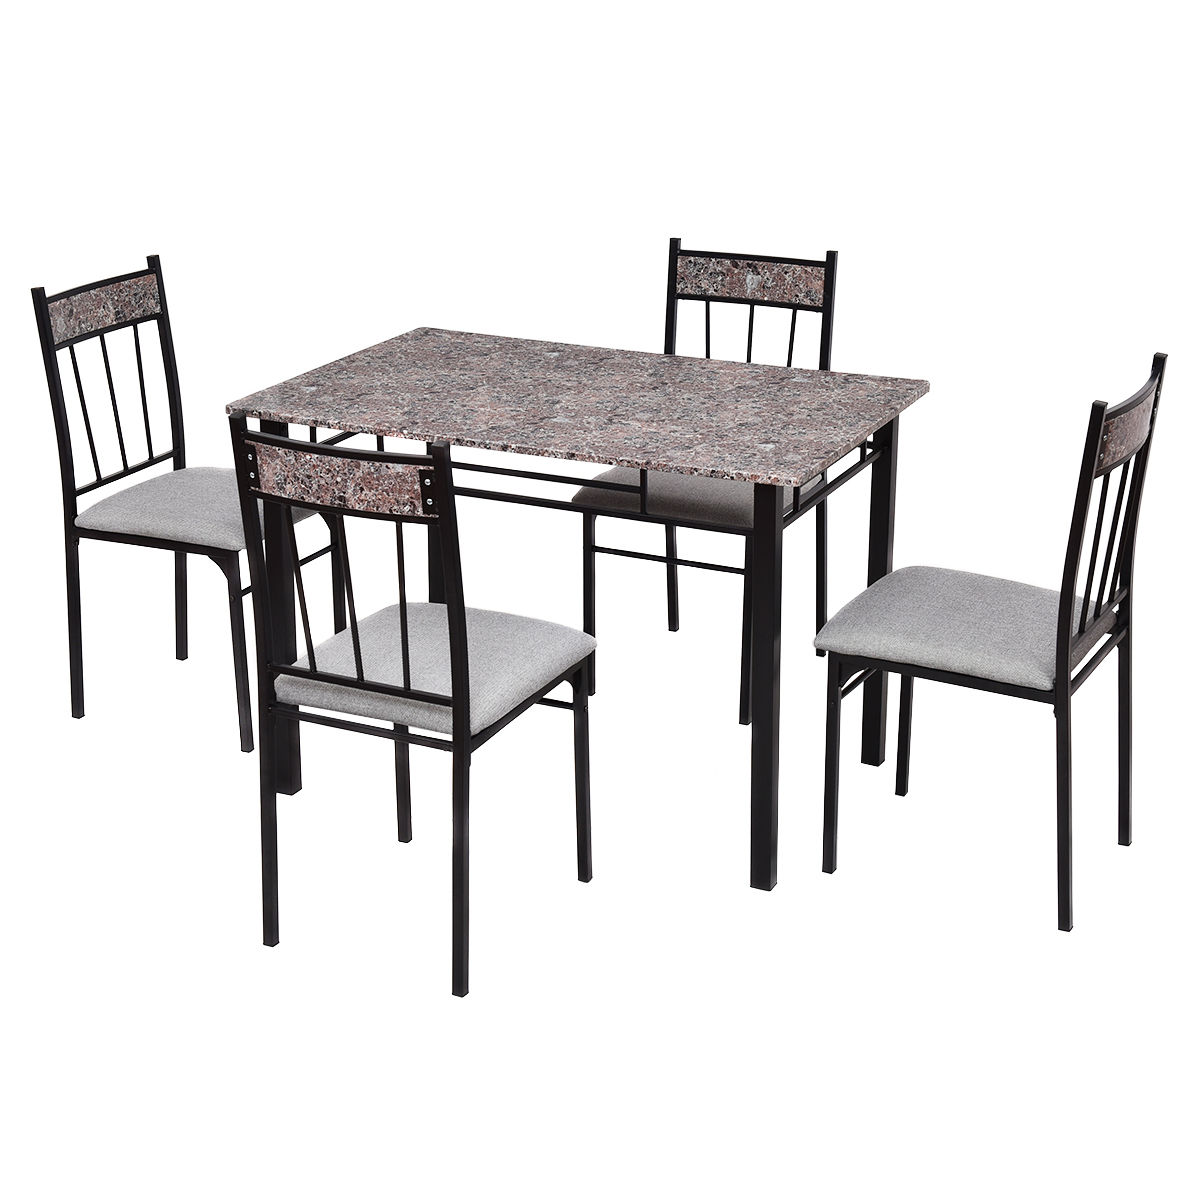 Costway 5 Piece Faux Marble Dining Room Set Table and 4 Chairs Kitchen Breakfast Furniture by Costway